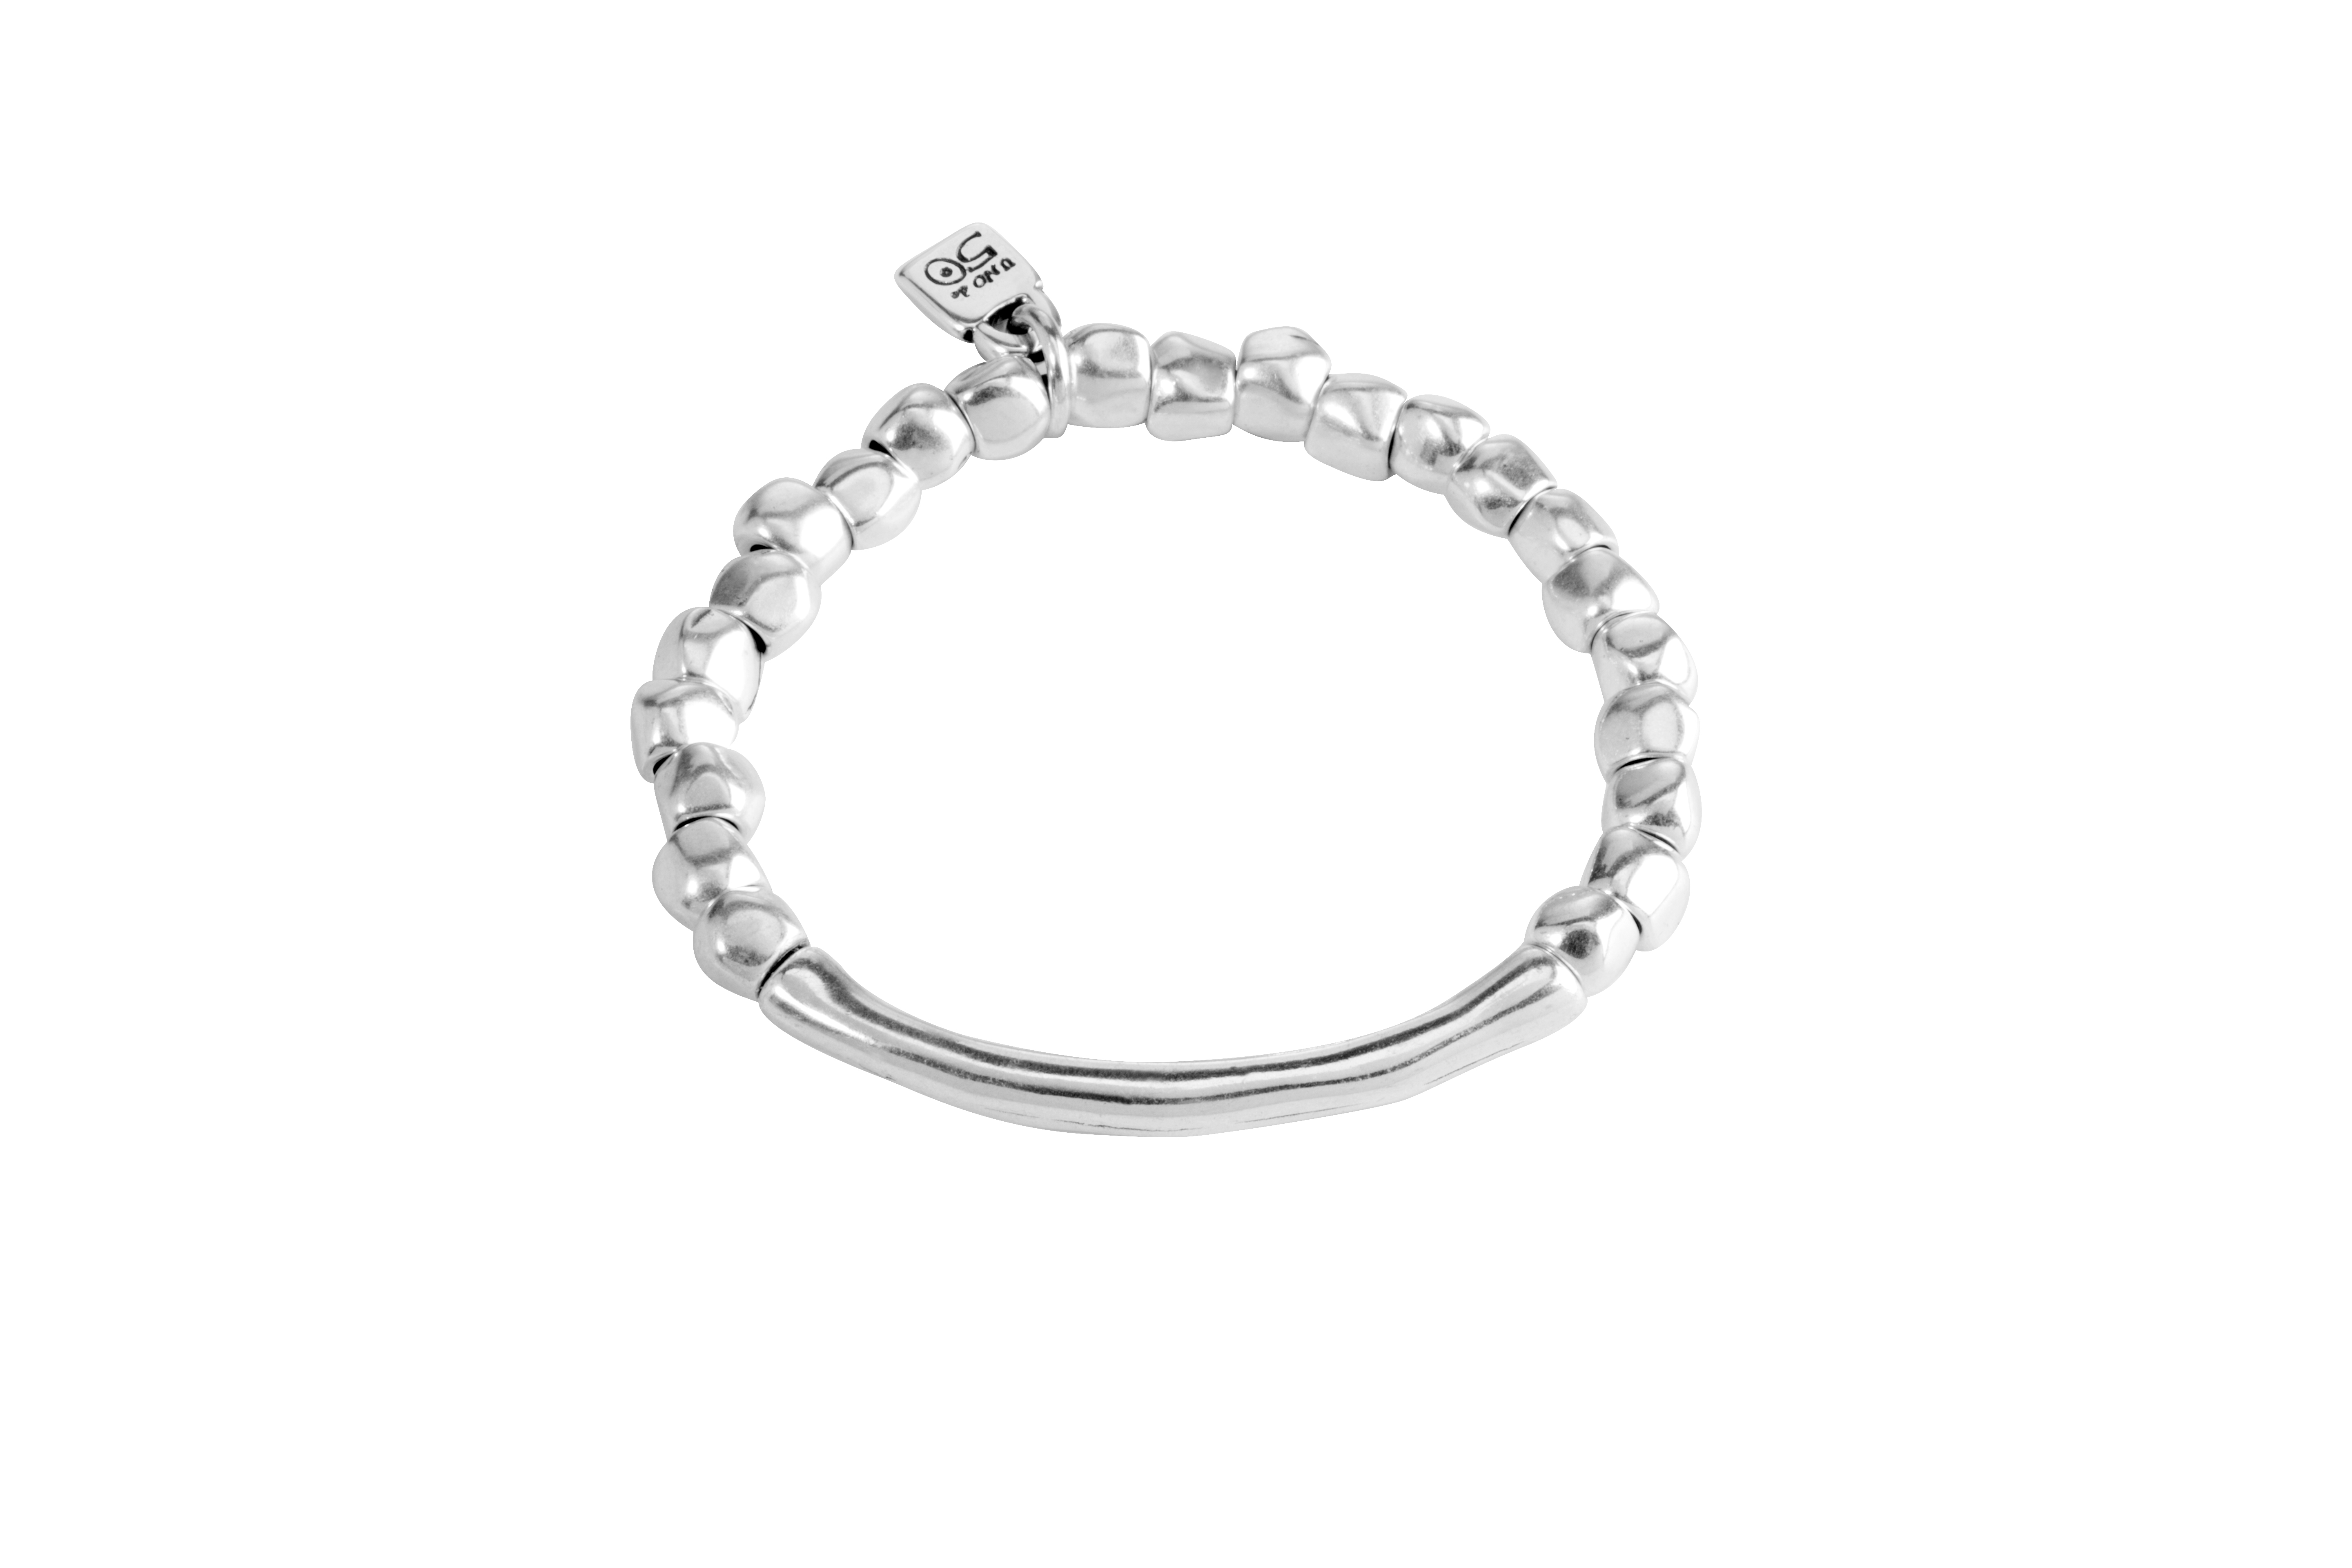 Uno De 50, Love, New Collection, Drakes, Jewellers, Plymouth, Bracelet